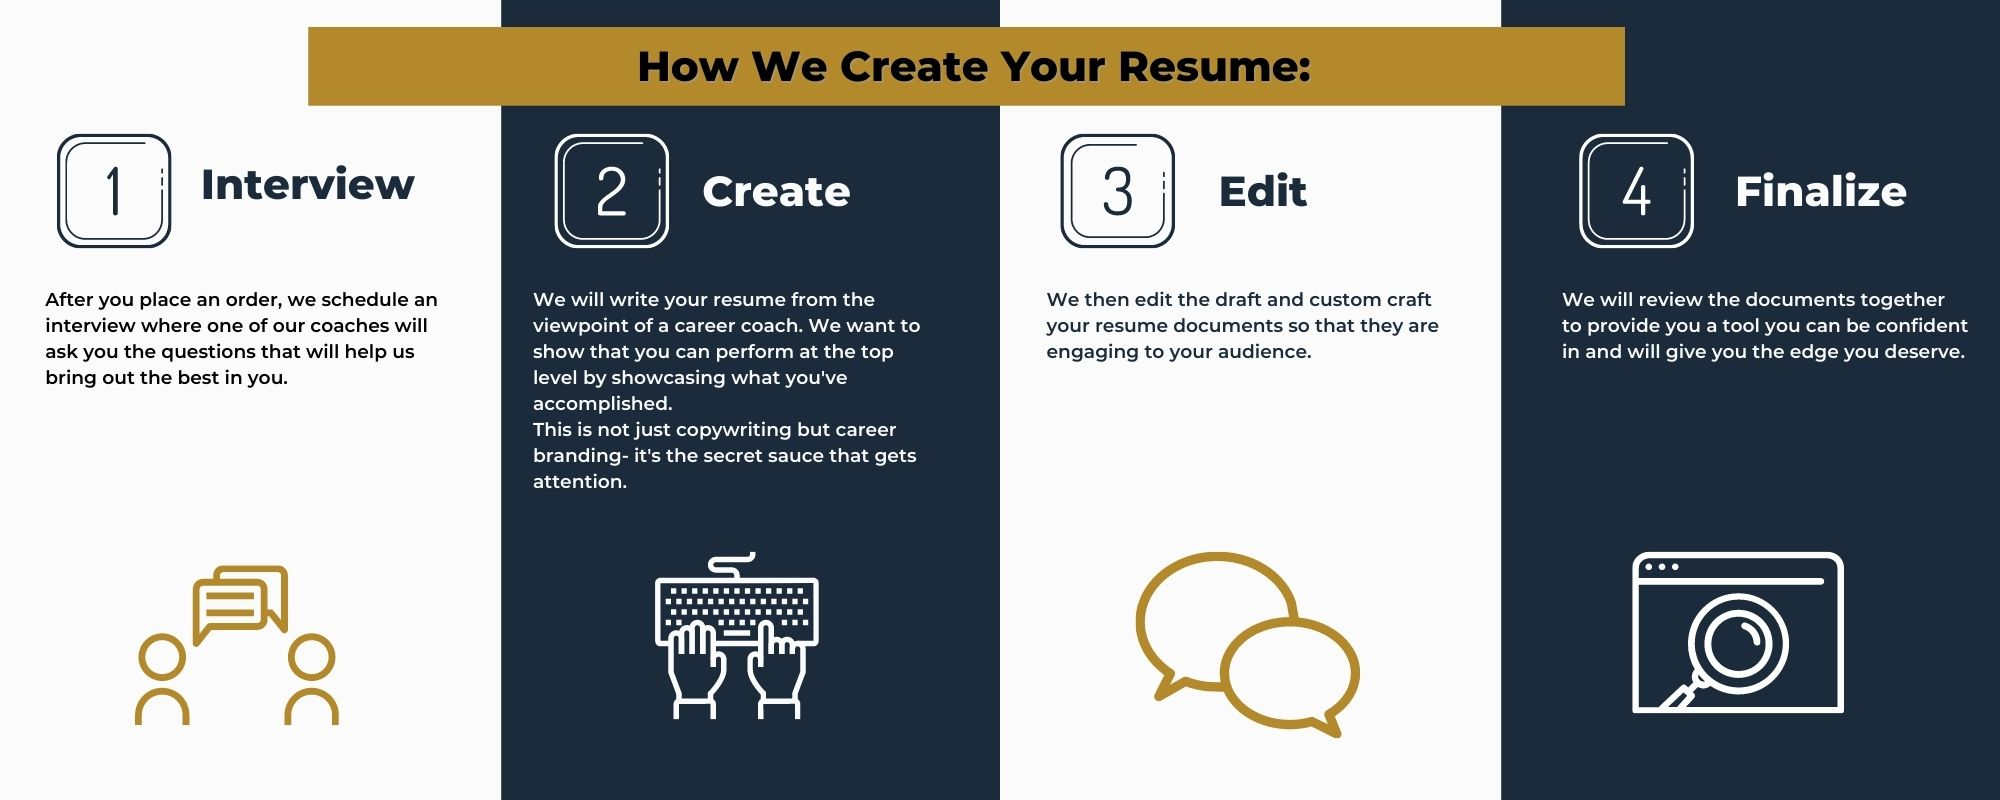 How We Write Your Resume